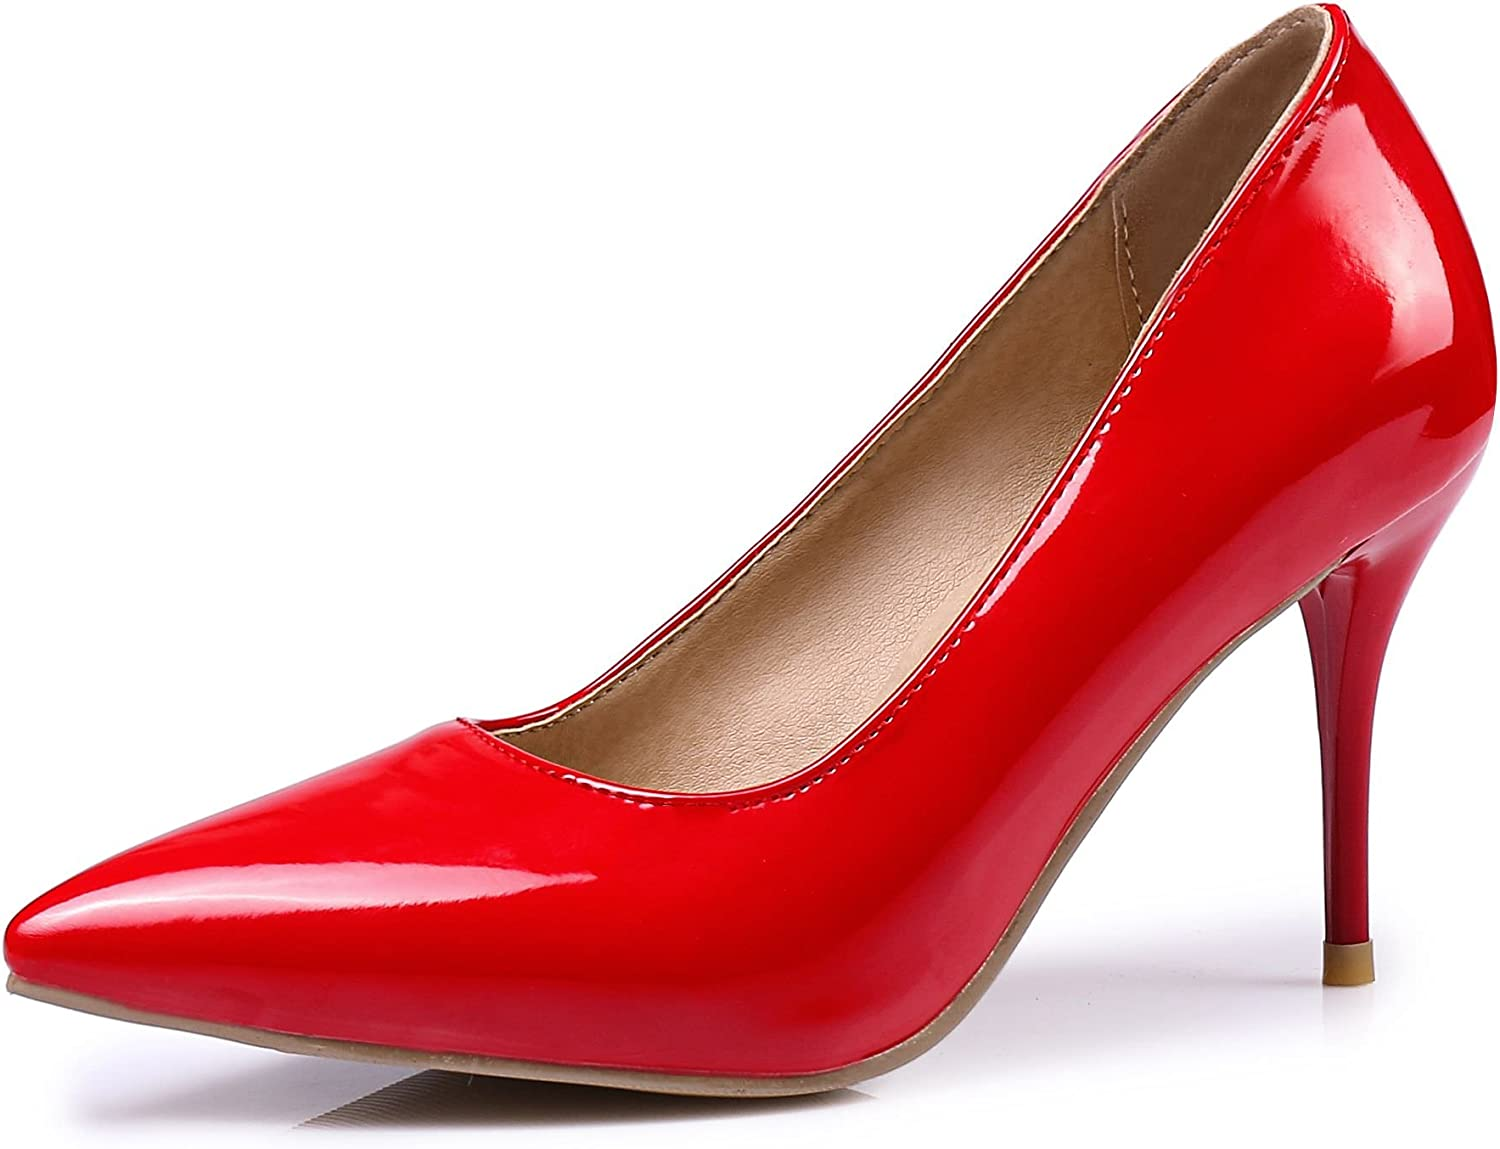 KingRover Women's Classic Fashion Pointed Closed Toe Stiletto Work Office Dress Pumps,7.5 B(M) US,Red